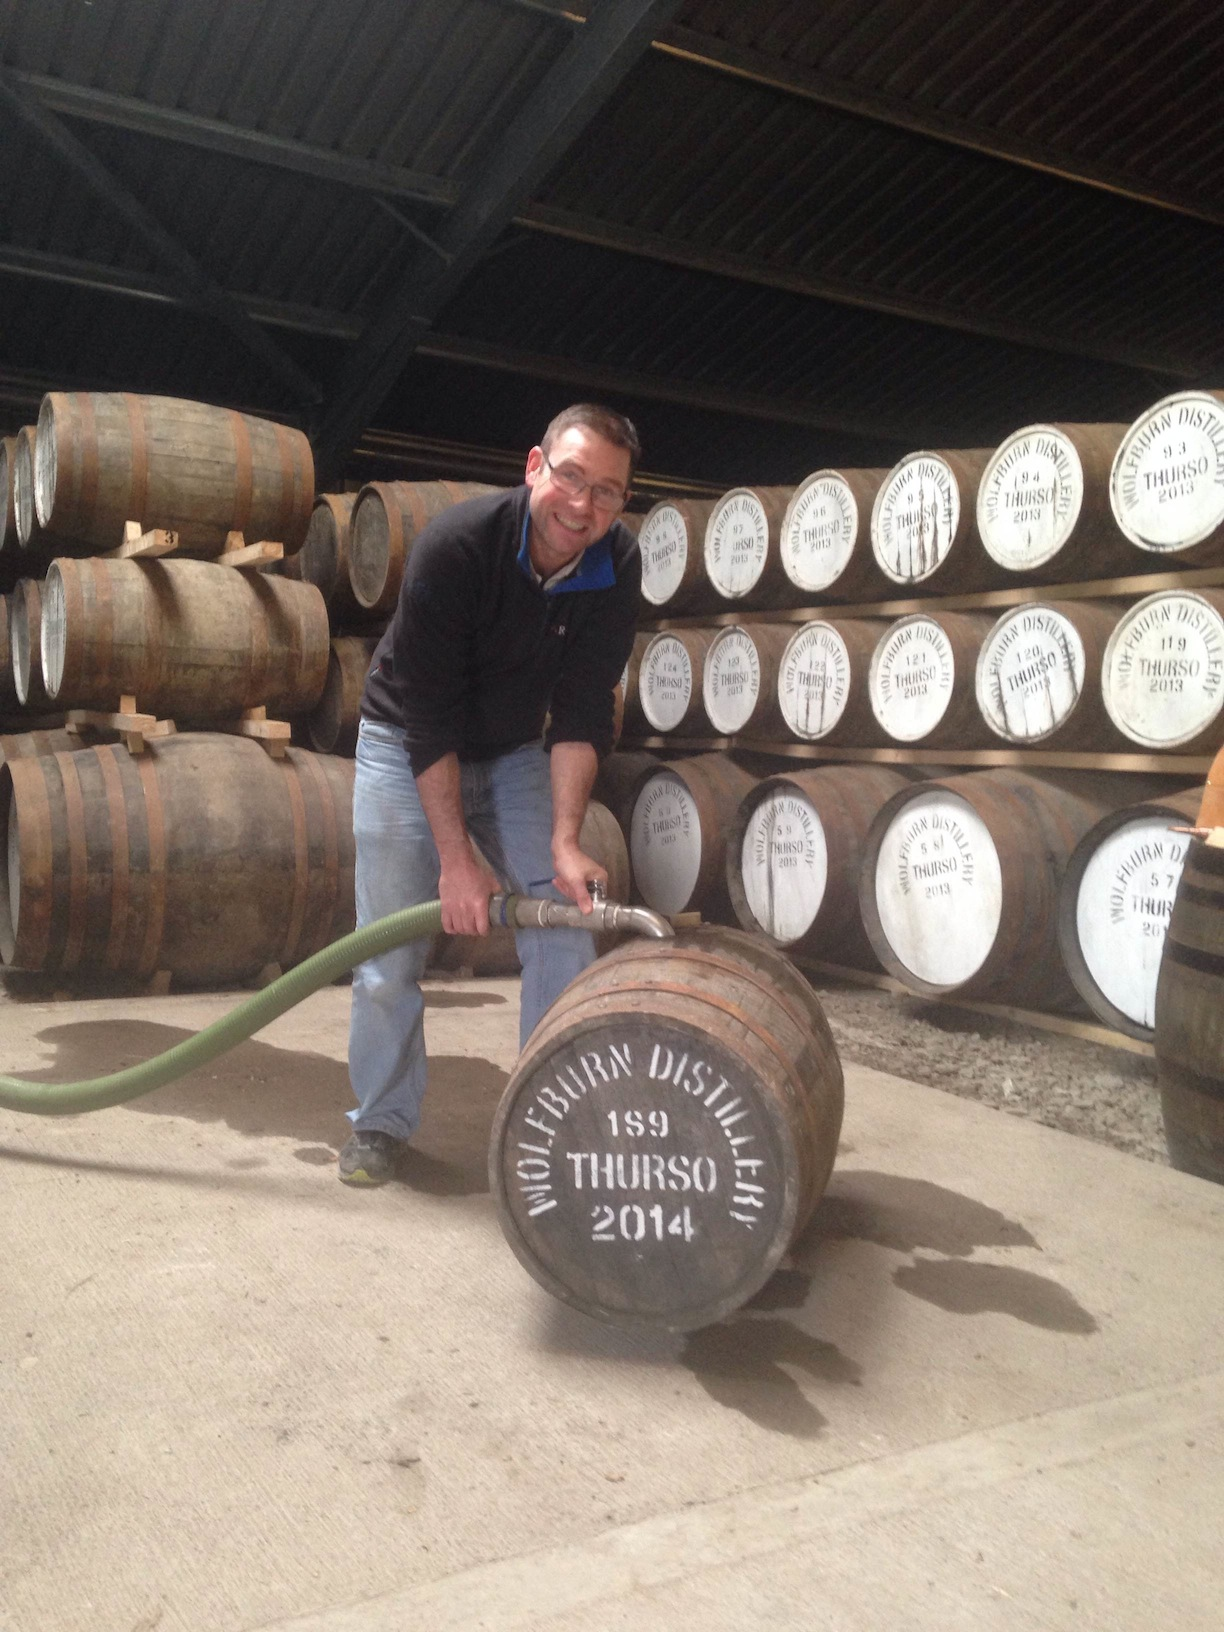 Blog Archive » Wolfburn Distillery Fills Its 1,000th Cask – Scotch Whisky News - whisky industry press releases, newsletters, events, tasting notes, bottlings and comments.